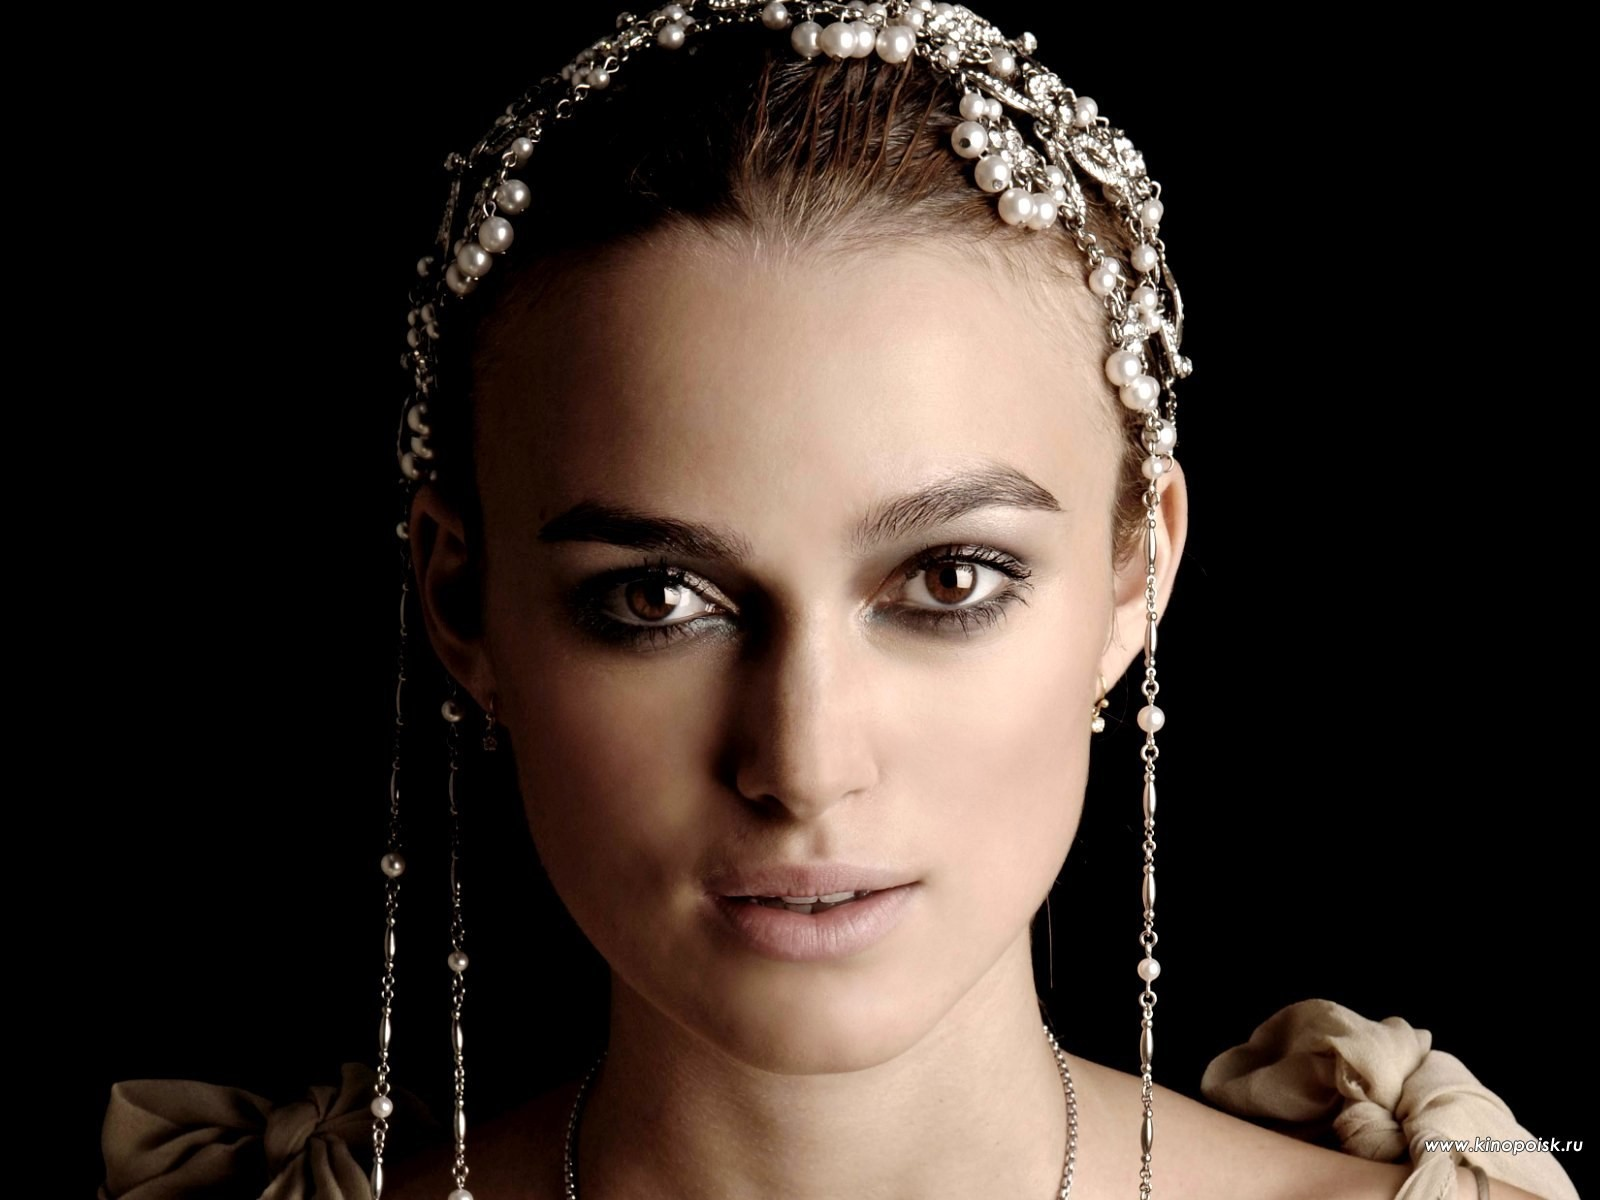 Keira Knightley HD Photos  Keira Knightley HD Photos